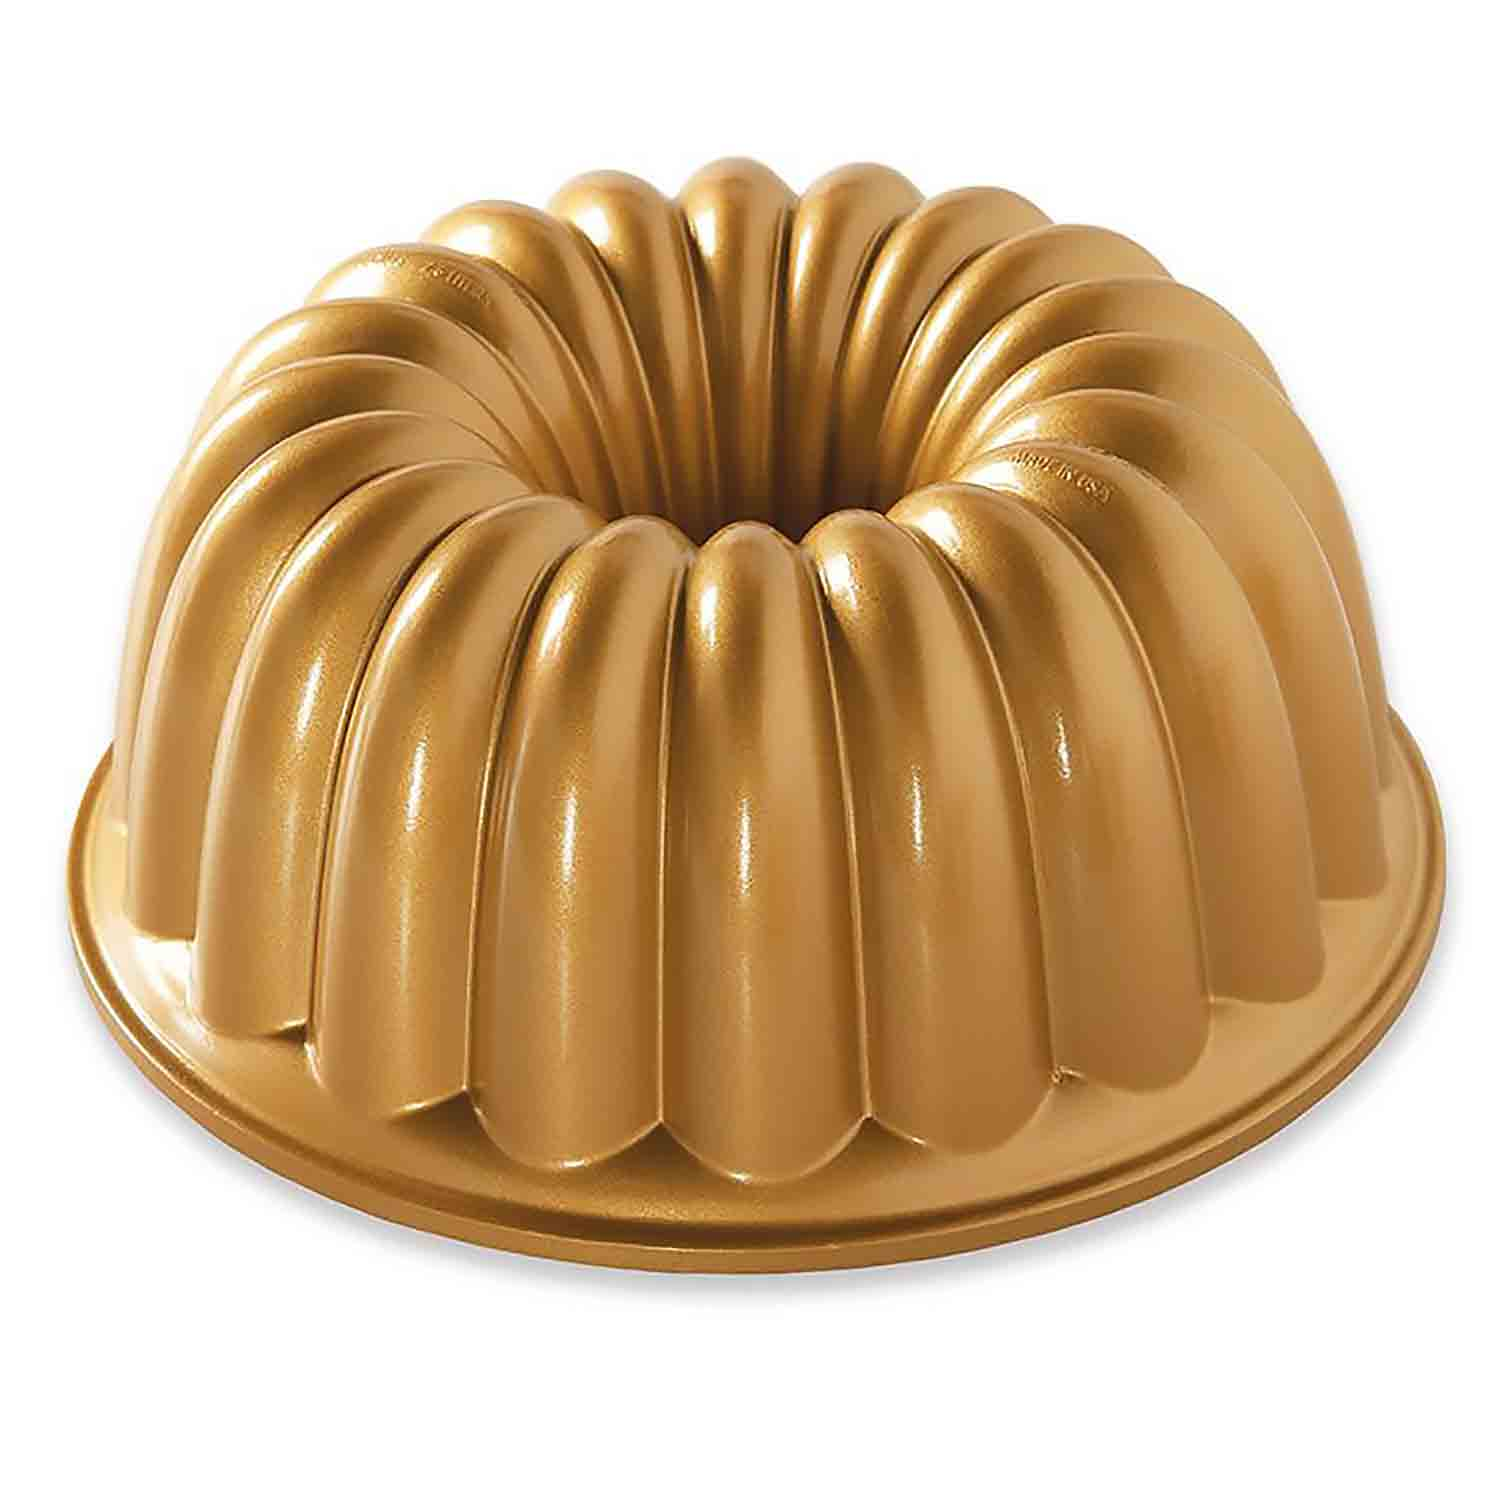 Elegant Party Bundt Cake Pan